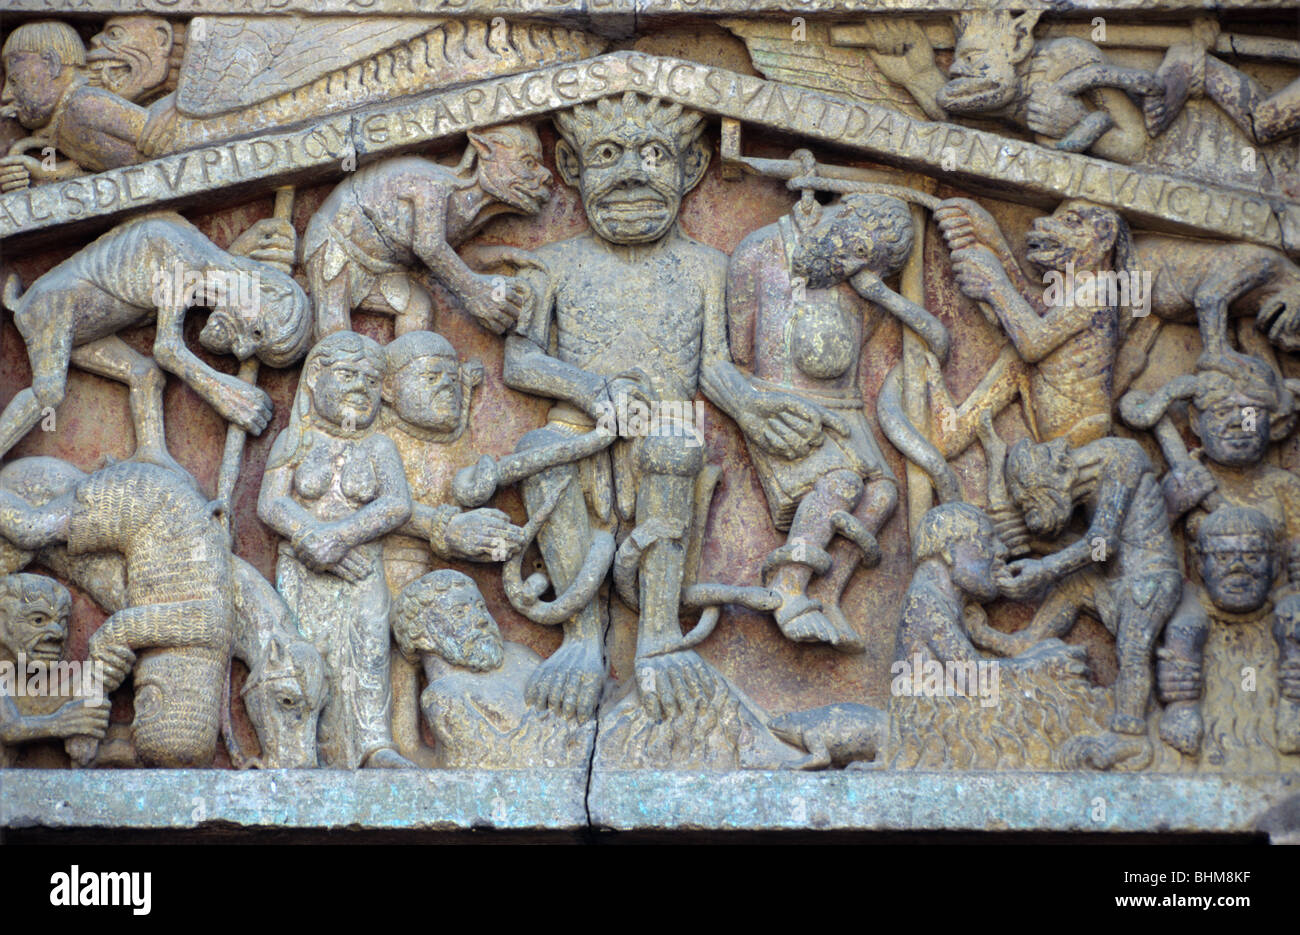 Satan or the Devil & the Chaos of Hell, c12th Romanesque Carving, Tympanam, West Facade, Sainte Foy Church, - Stock Image